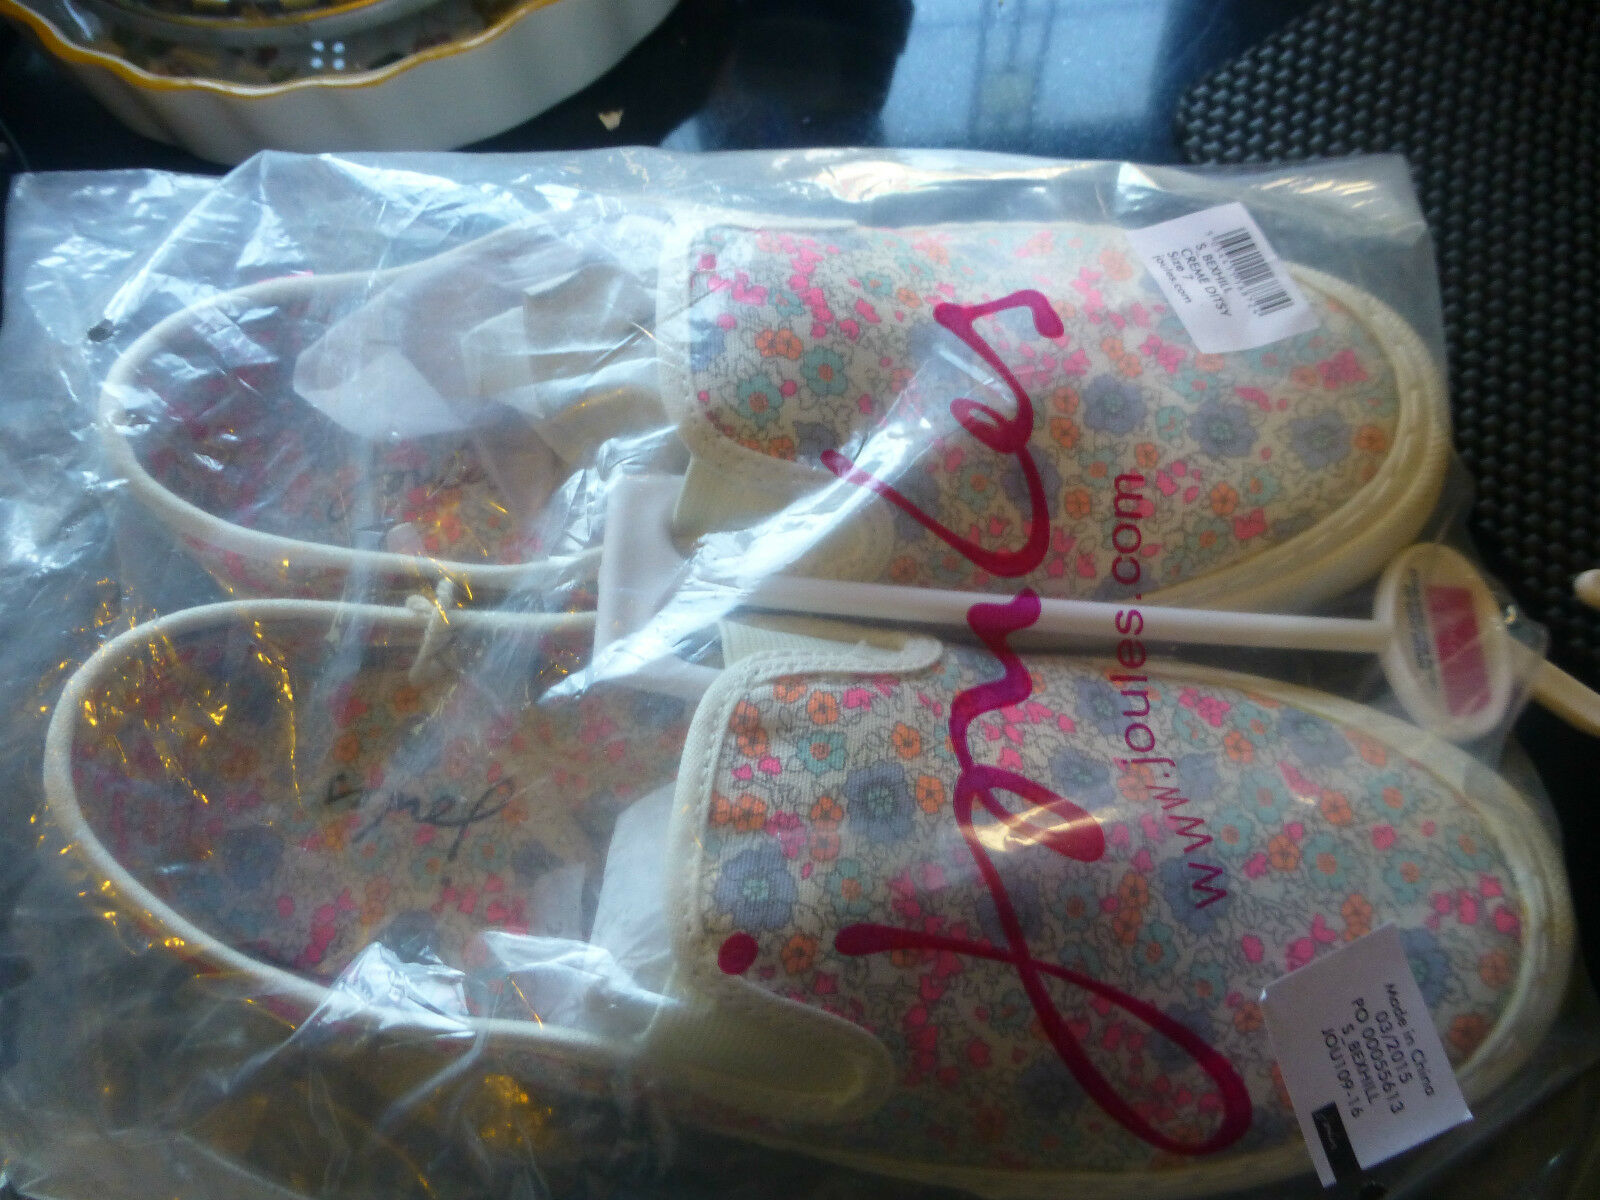 BNWT JOULES PALE PINK MIX DITSY PRINT WHITE RUBBER SOLES 7 PULL ON PUMPS SIZE 7 SOLES d0435a